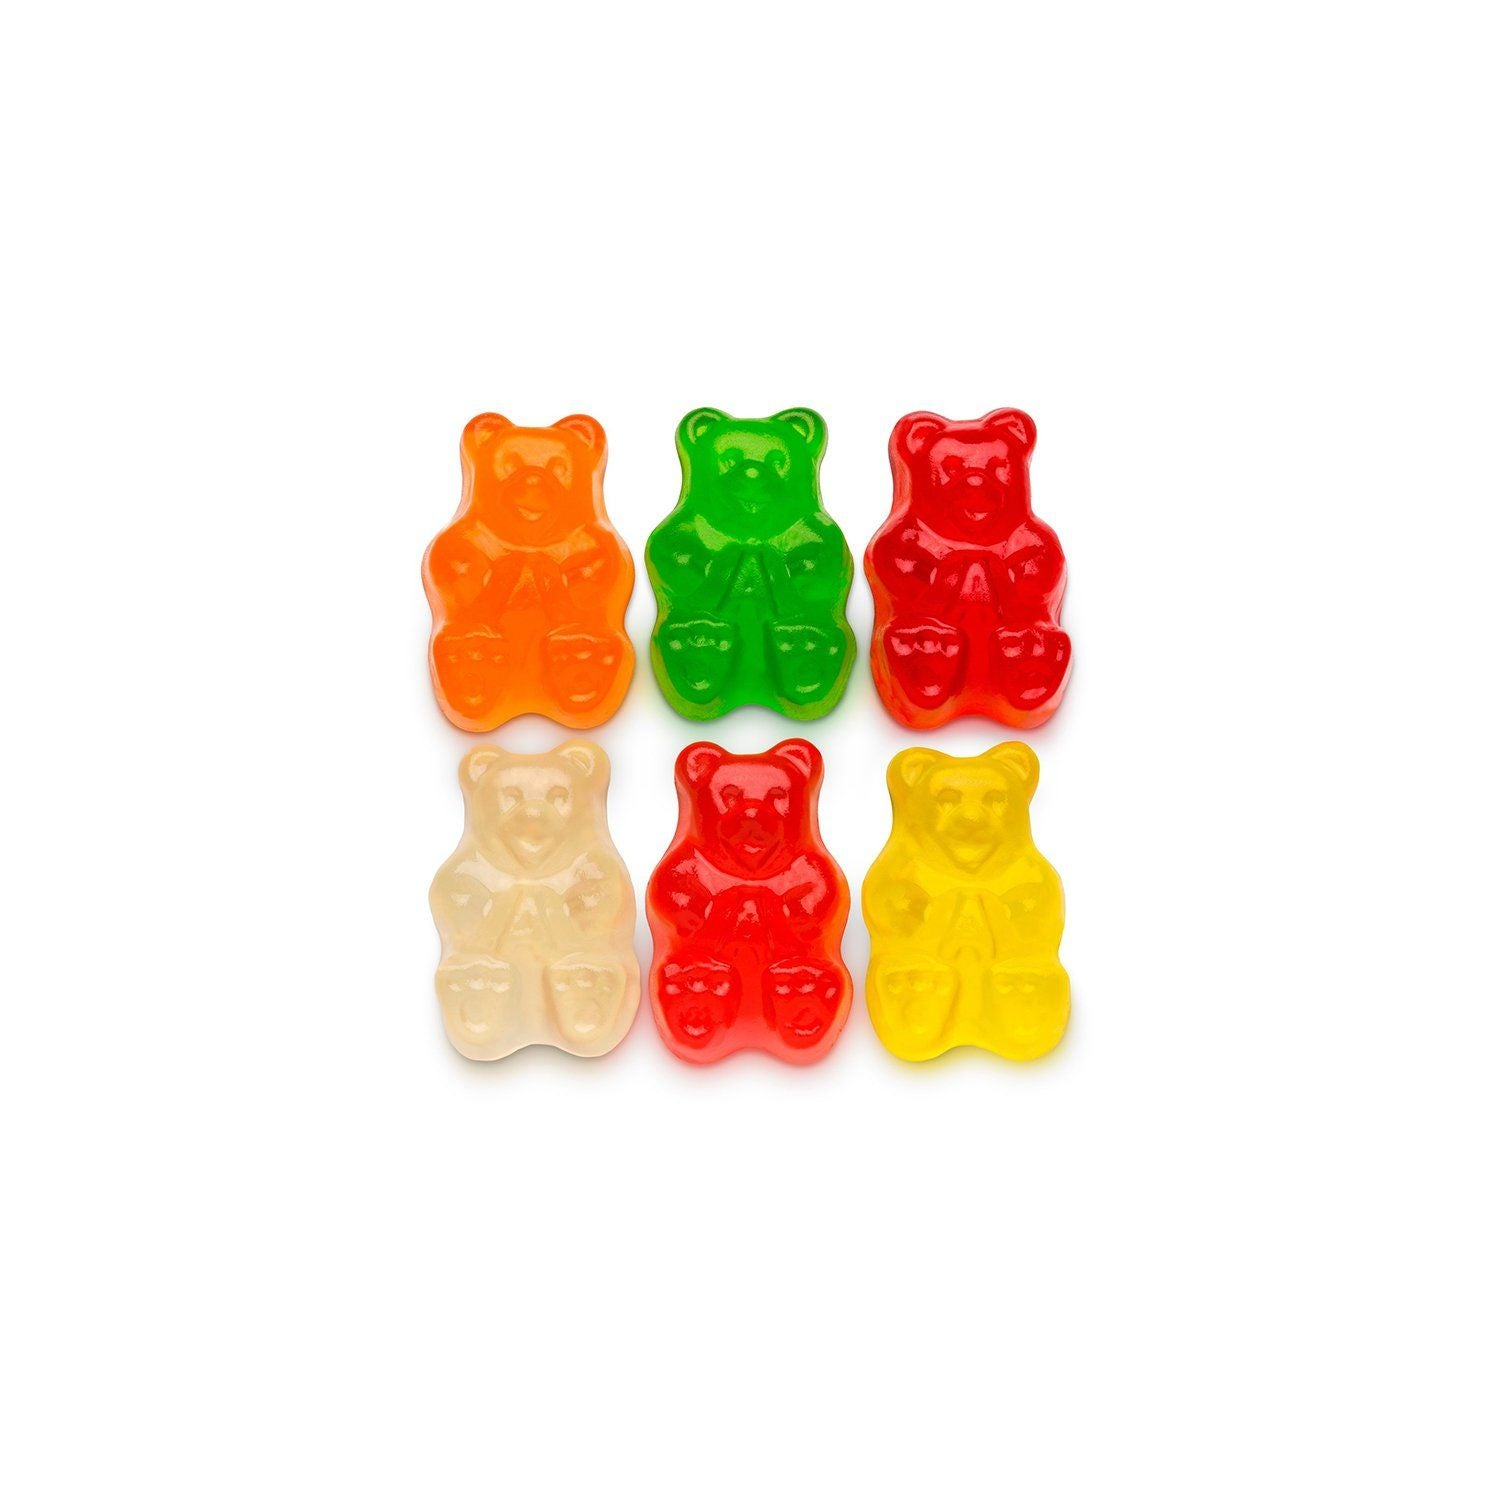 Relax Gummies - CBD Infused Gummy Bears [Edible Candy] - My CBD Mall